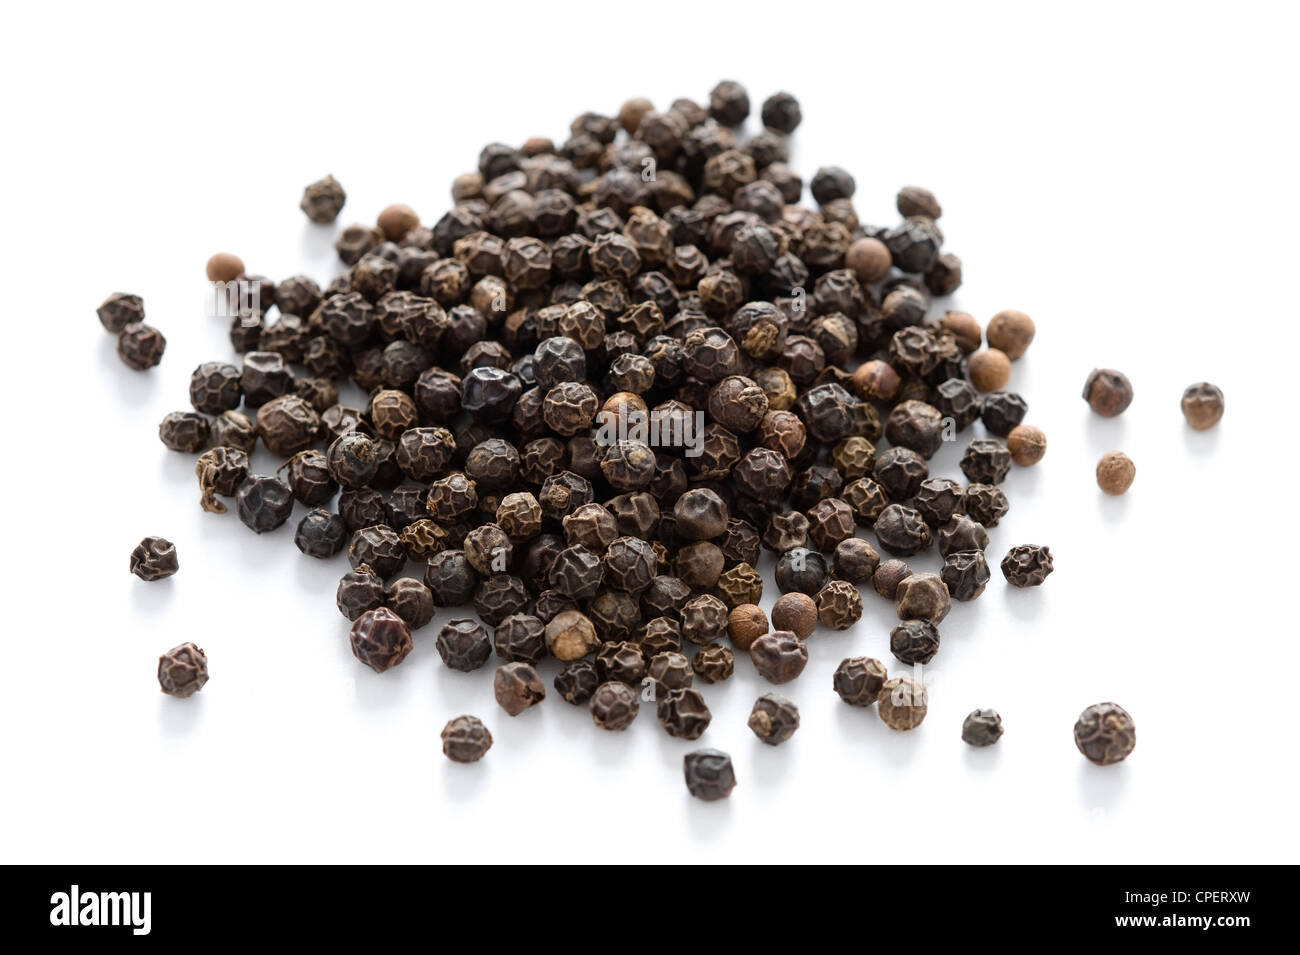 heap of black peppercorns isolated on a white background - Stock Image